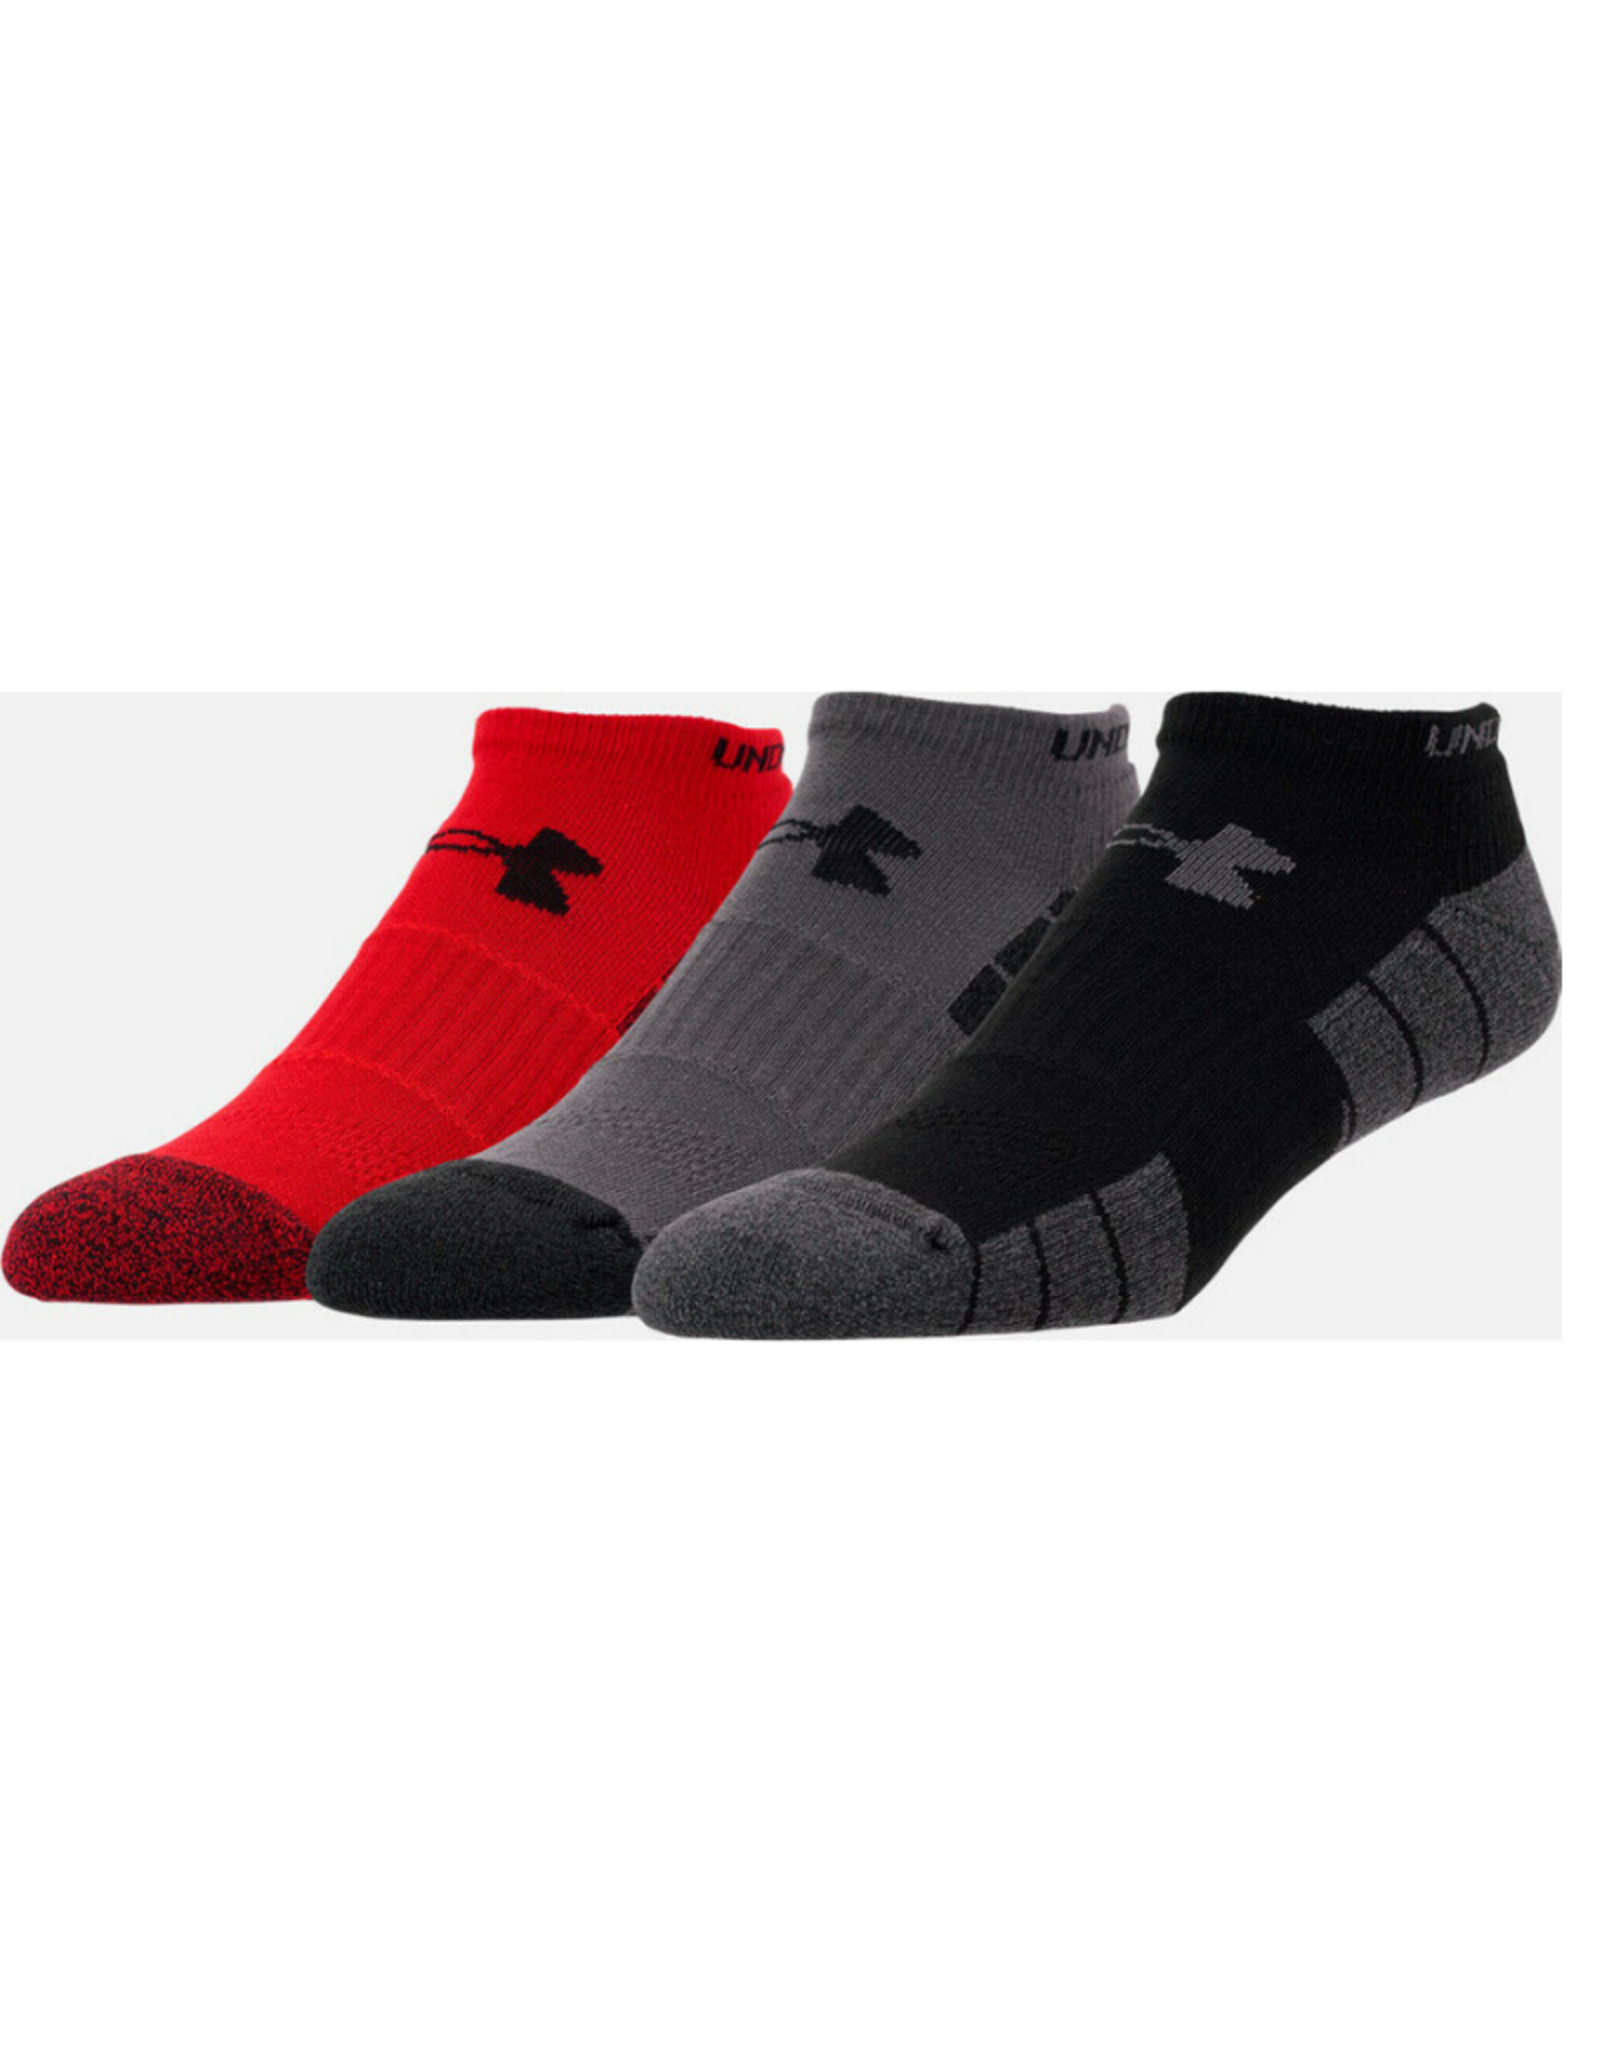 Under Armour Elevated  No Show 3 pack Socks Black/Red/Grey